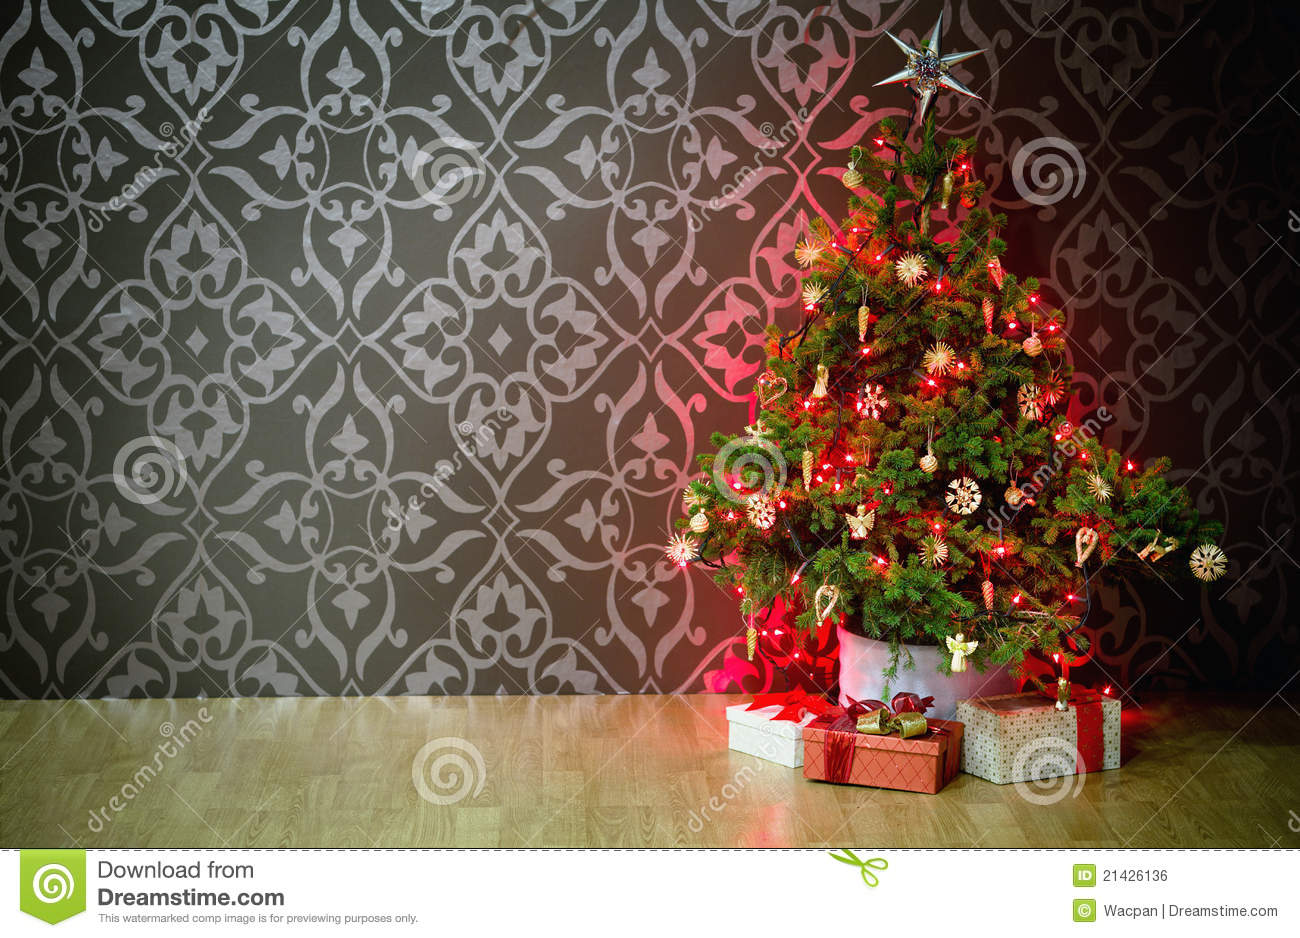 Presents Under A Christmas Tree Royalty Free Stock Image - Image ...